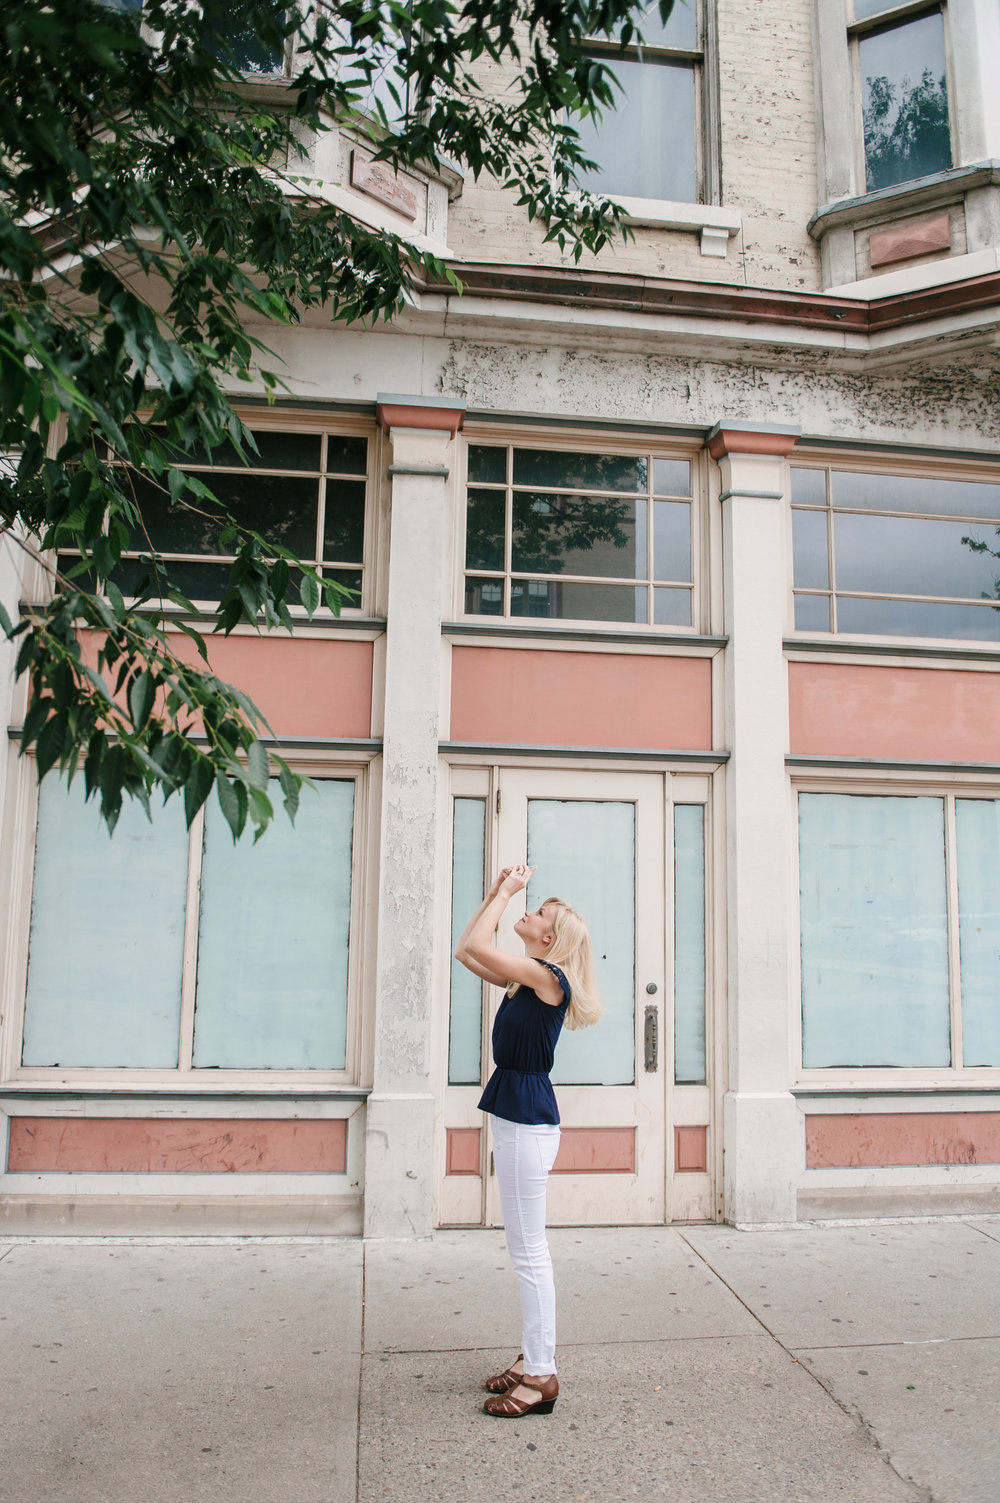 Andrea Dozier Photography in Dayton, Ohio's Oregon District